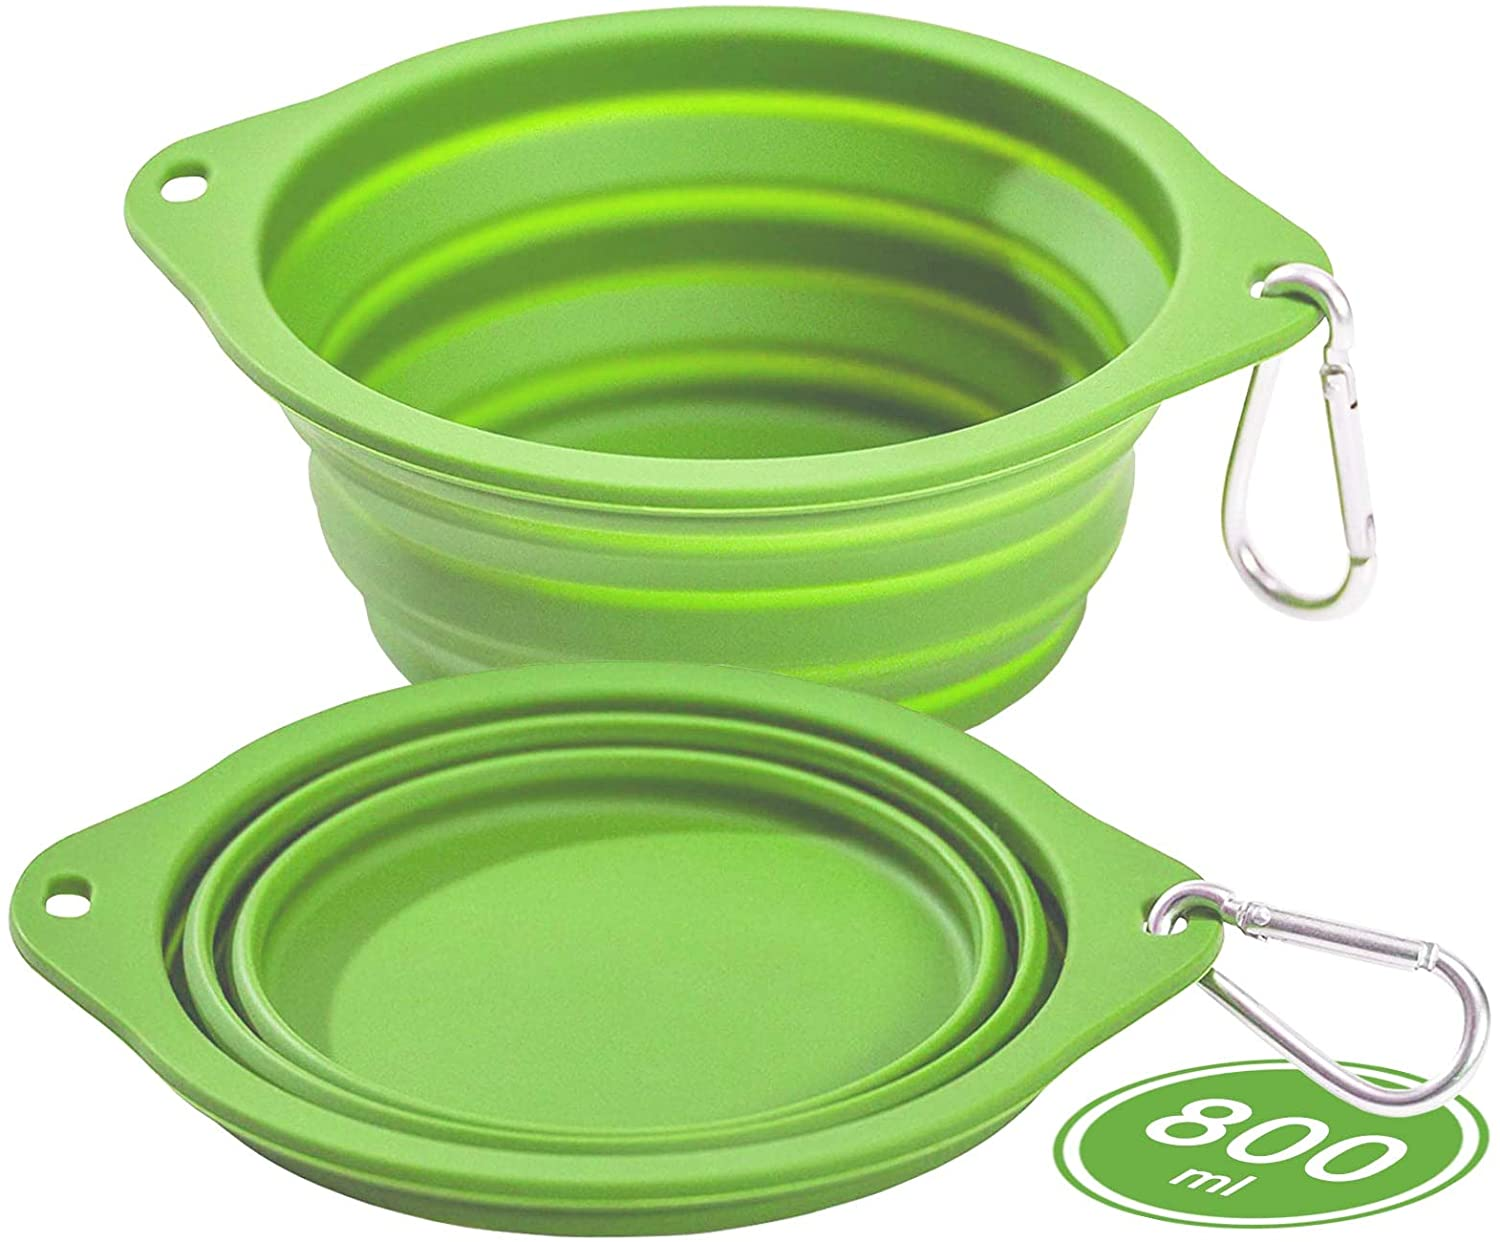 CFMOUR Collapsible Dog Bowls for Travel, 2-Pack 800ml Portable Dog Water Bowl, Silicone Foldable Pet Feeding Watering Dish for Camping Hiking Traveling, Green